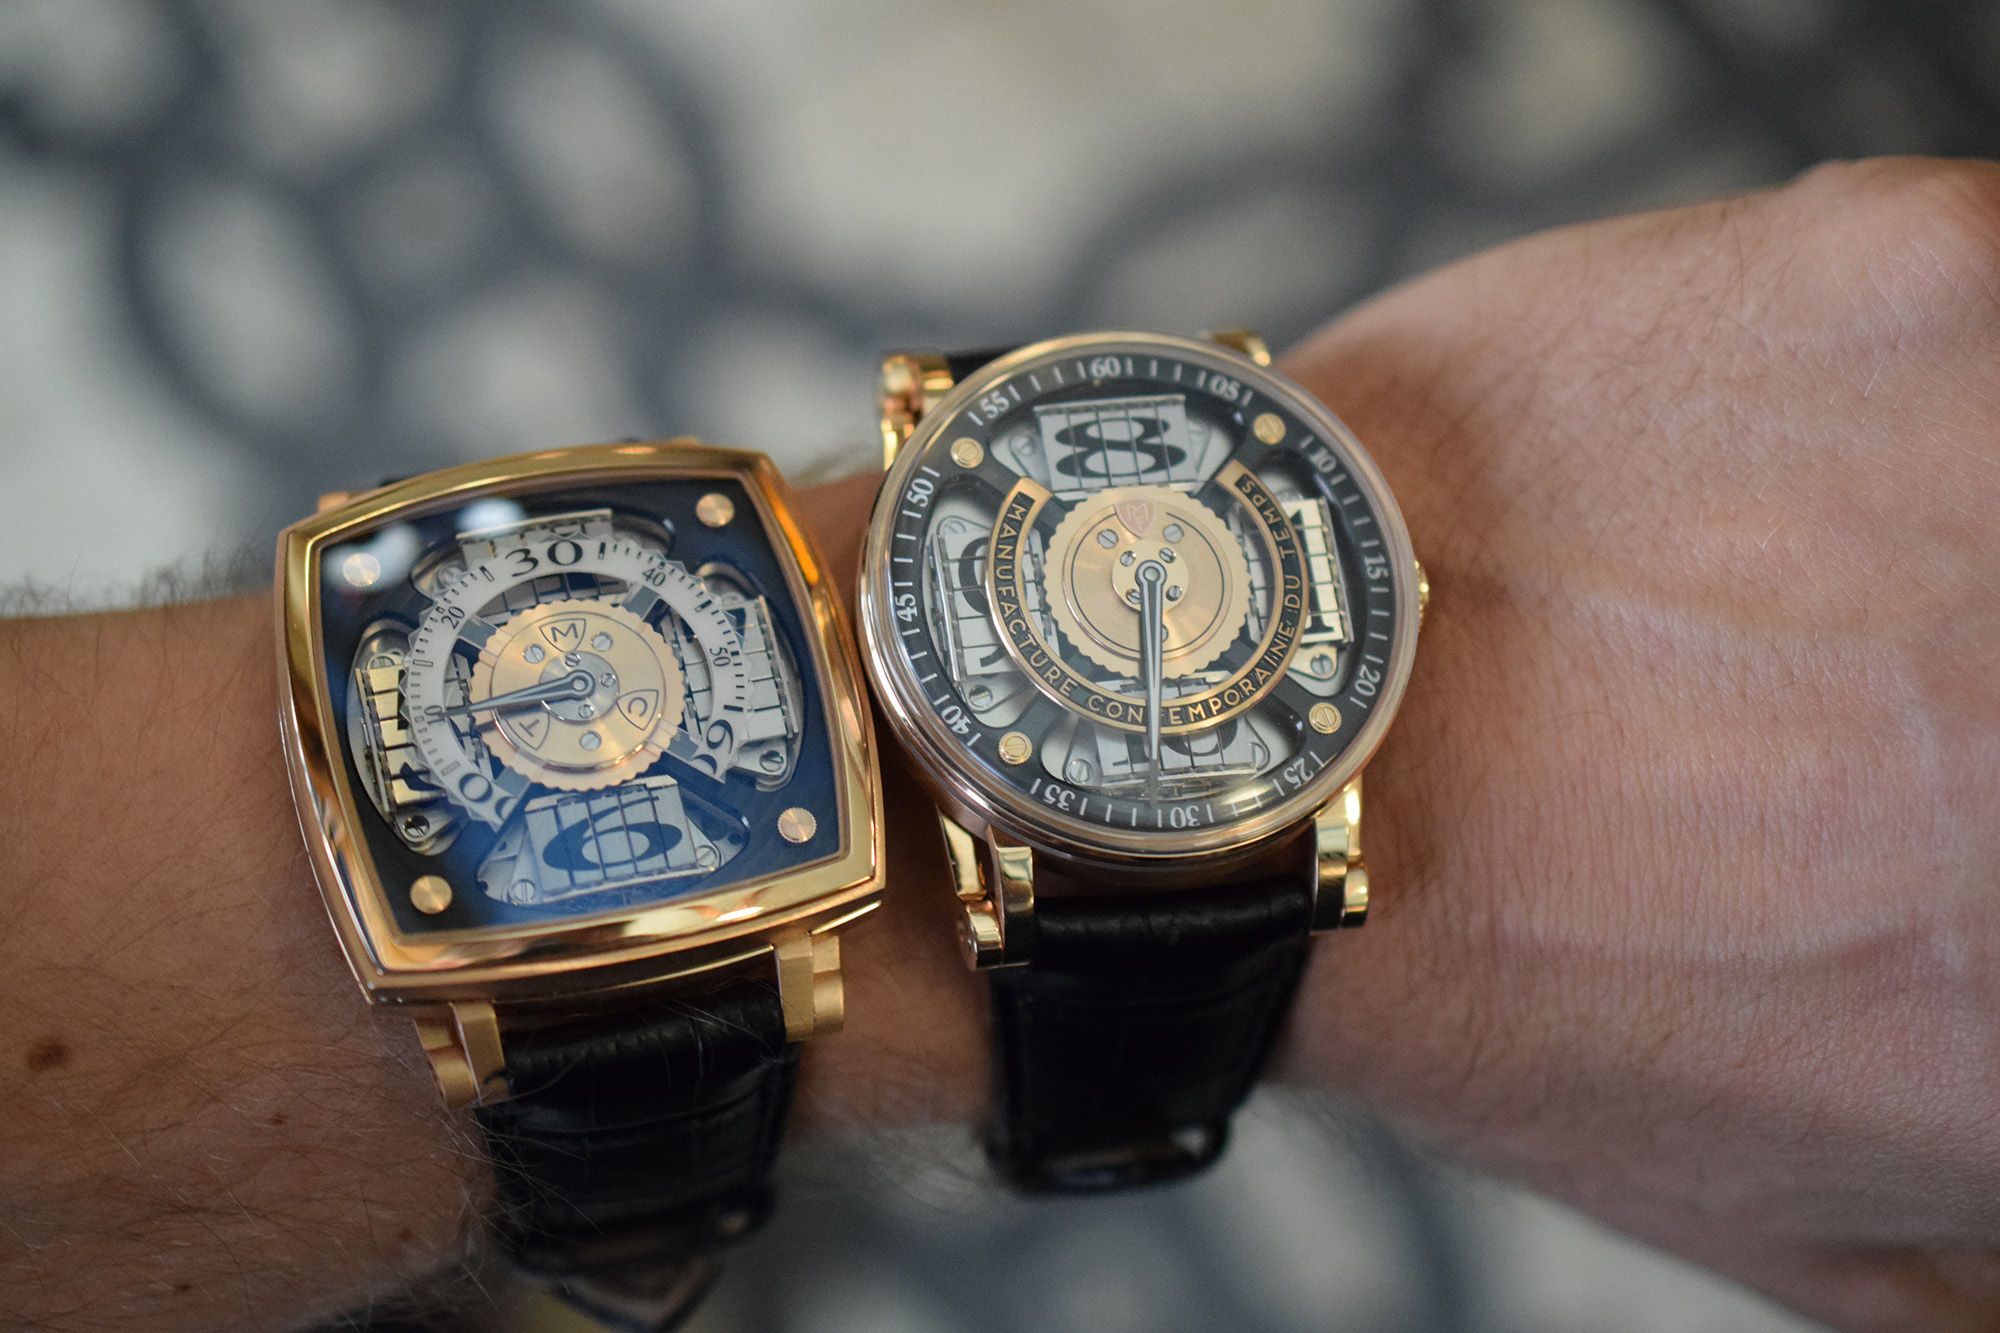 MCT Sequential 1 (S100) next to the new Sequential 2 S200 (Wristshot)